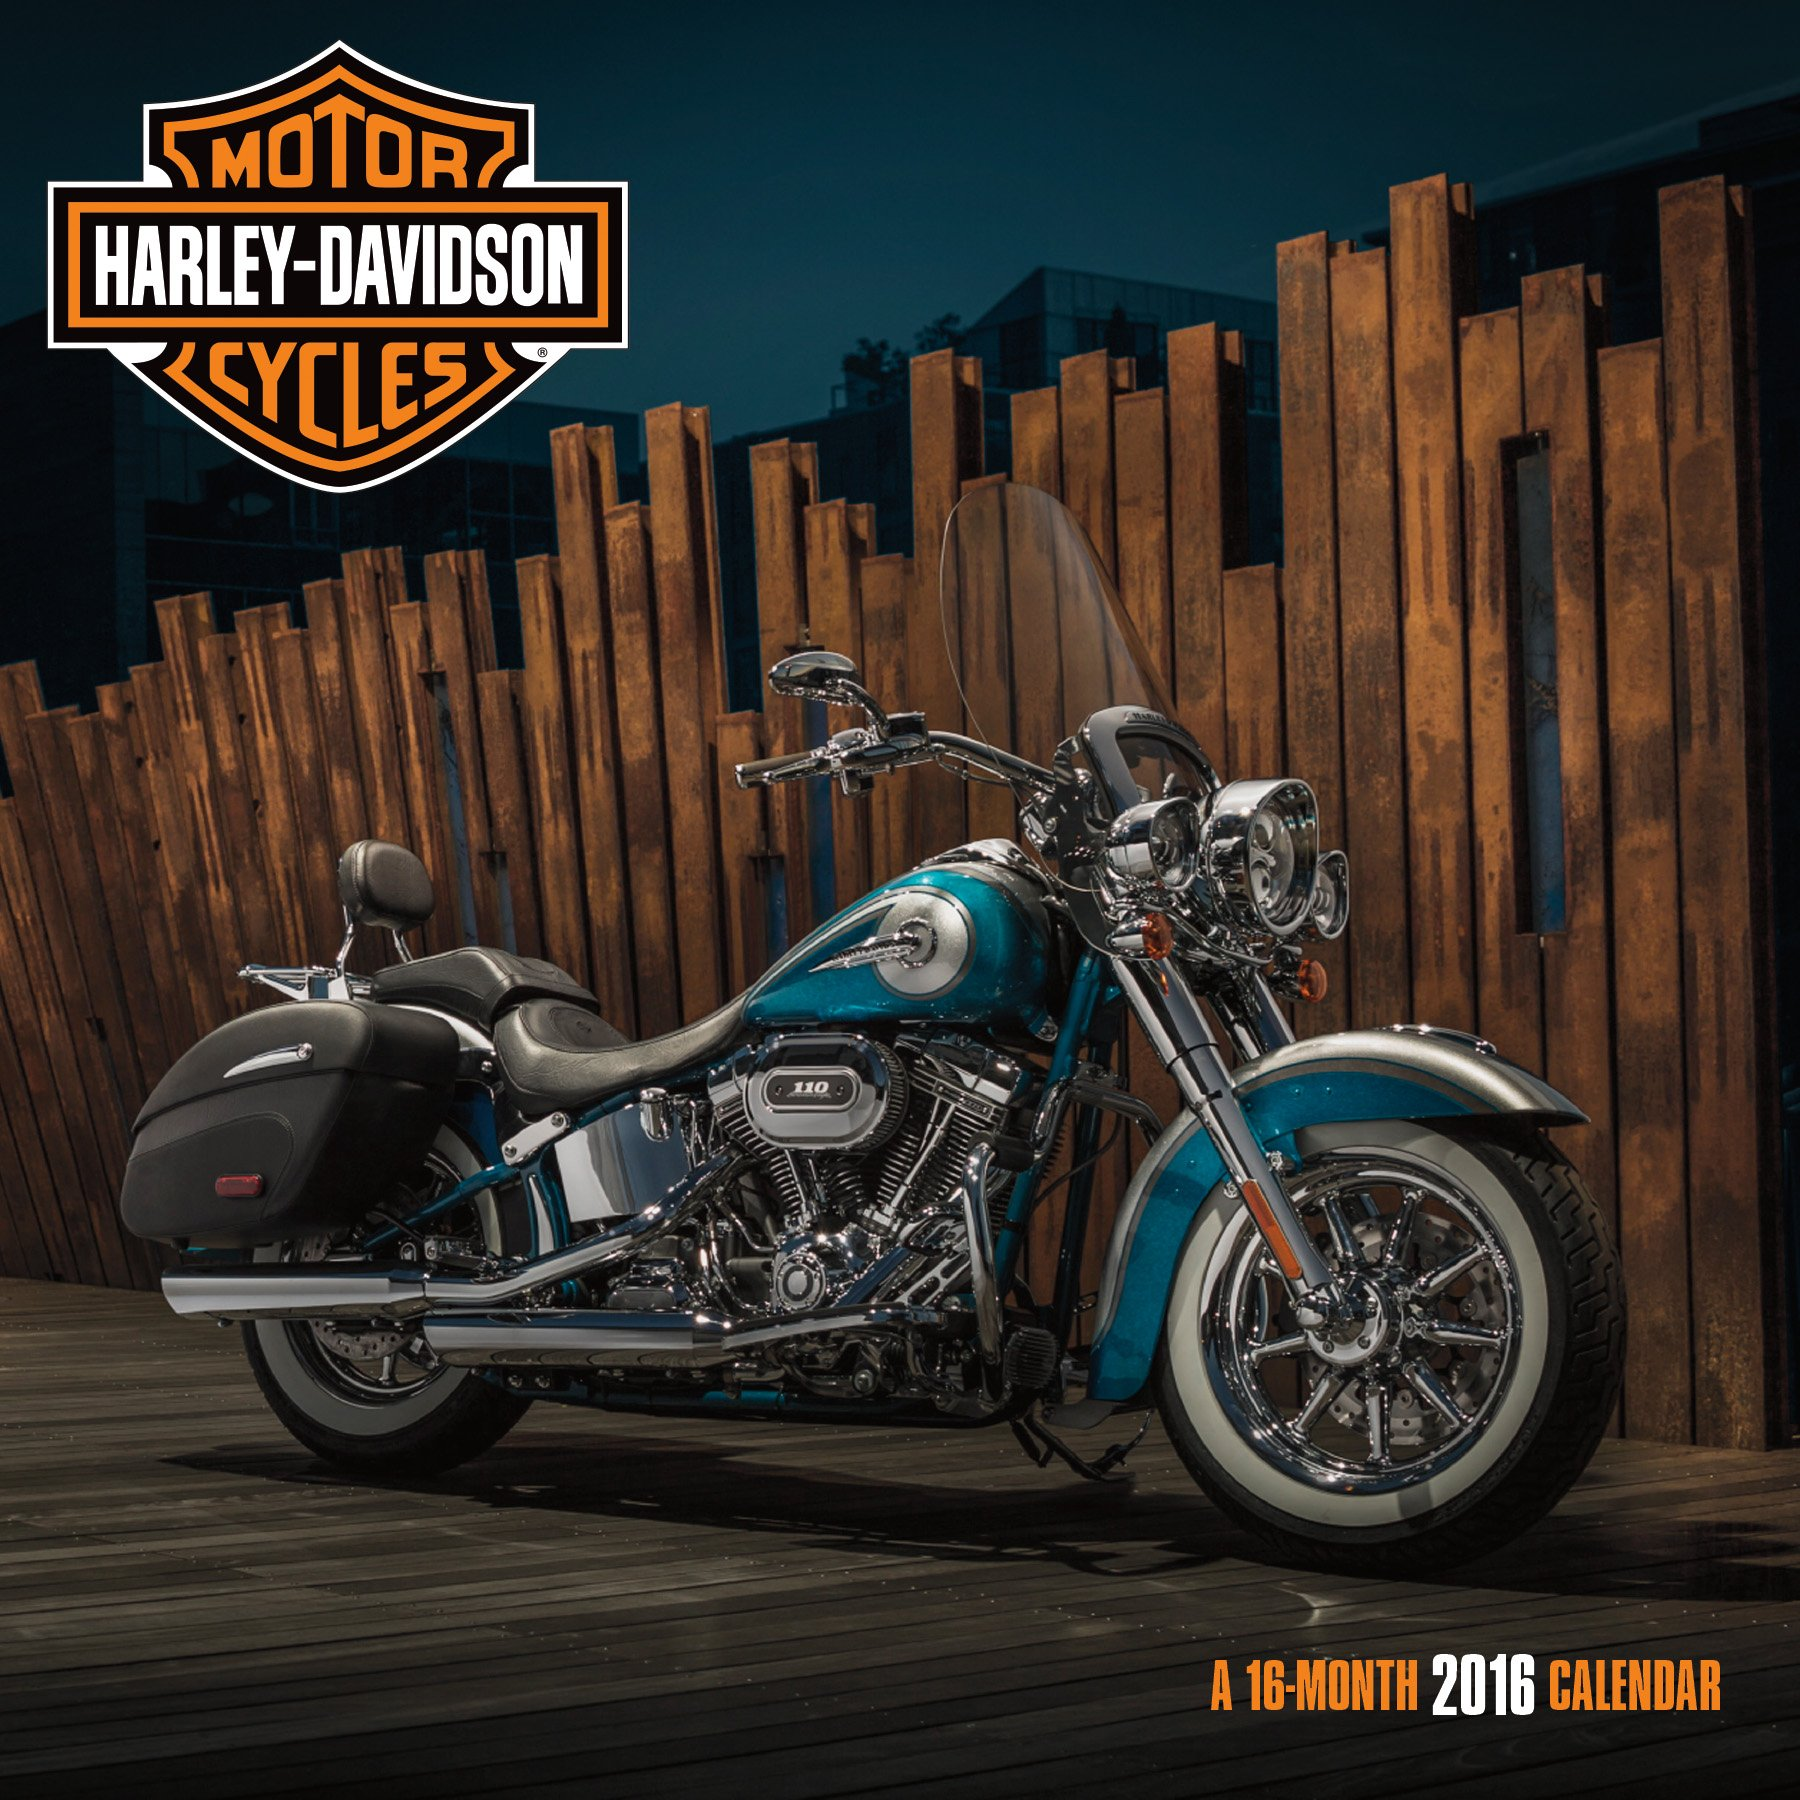 harley davidson 2016 wall calendar trends international 9781438840727 amazoncom books